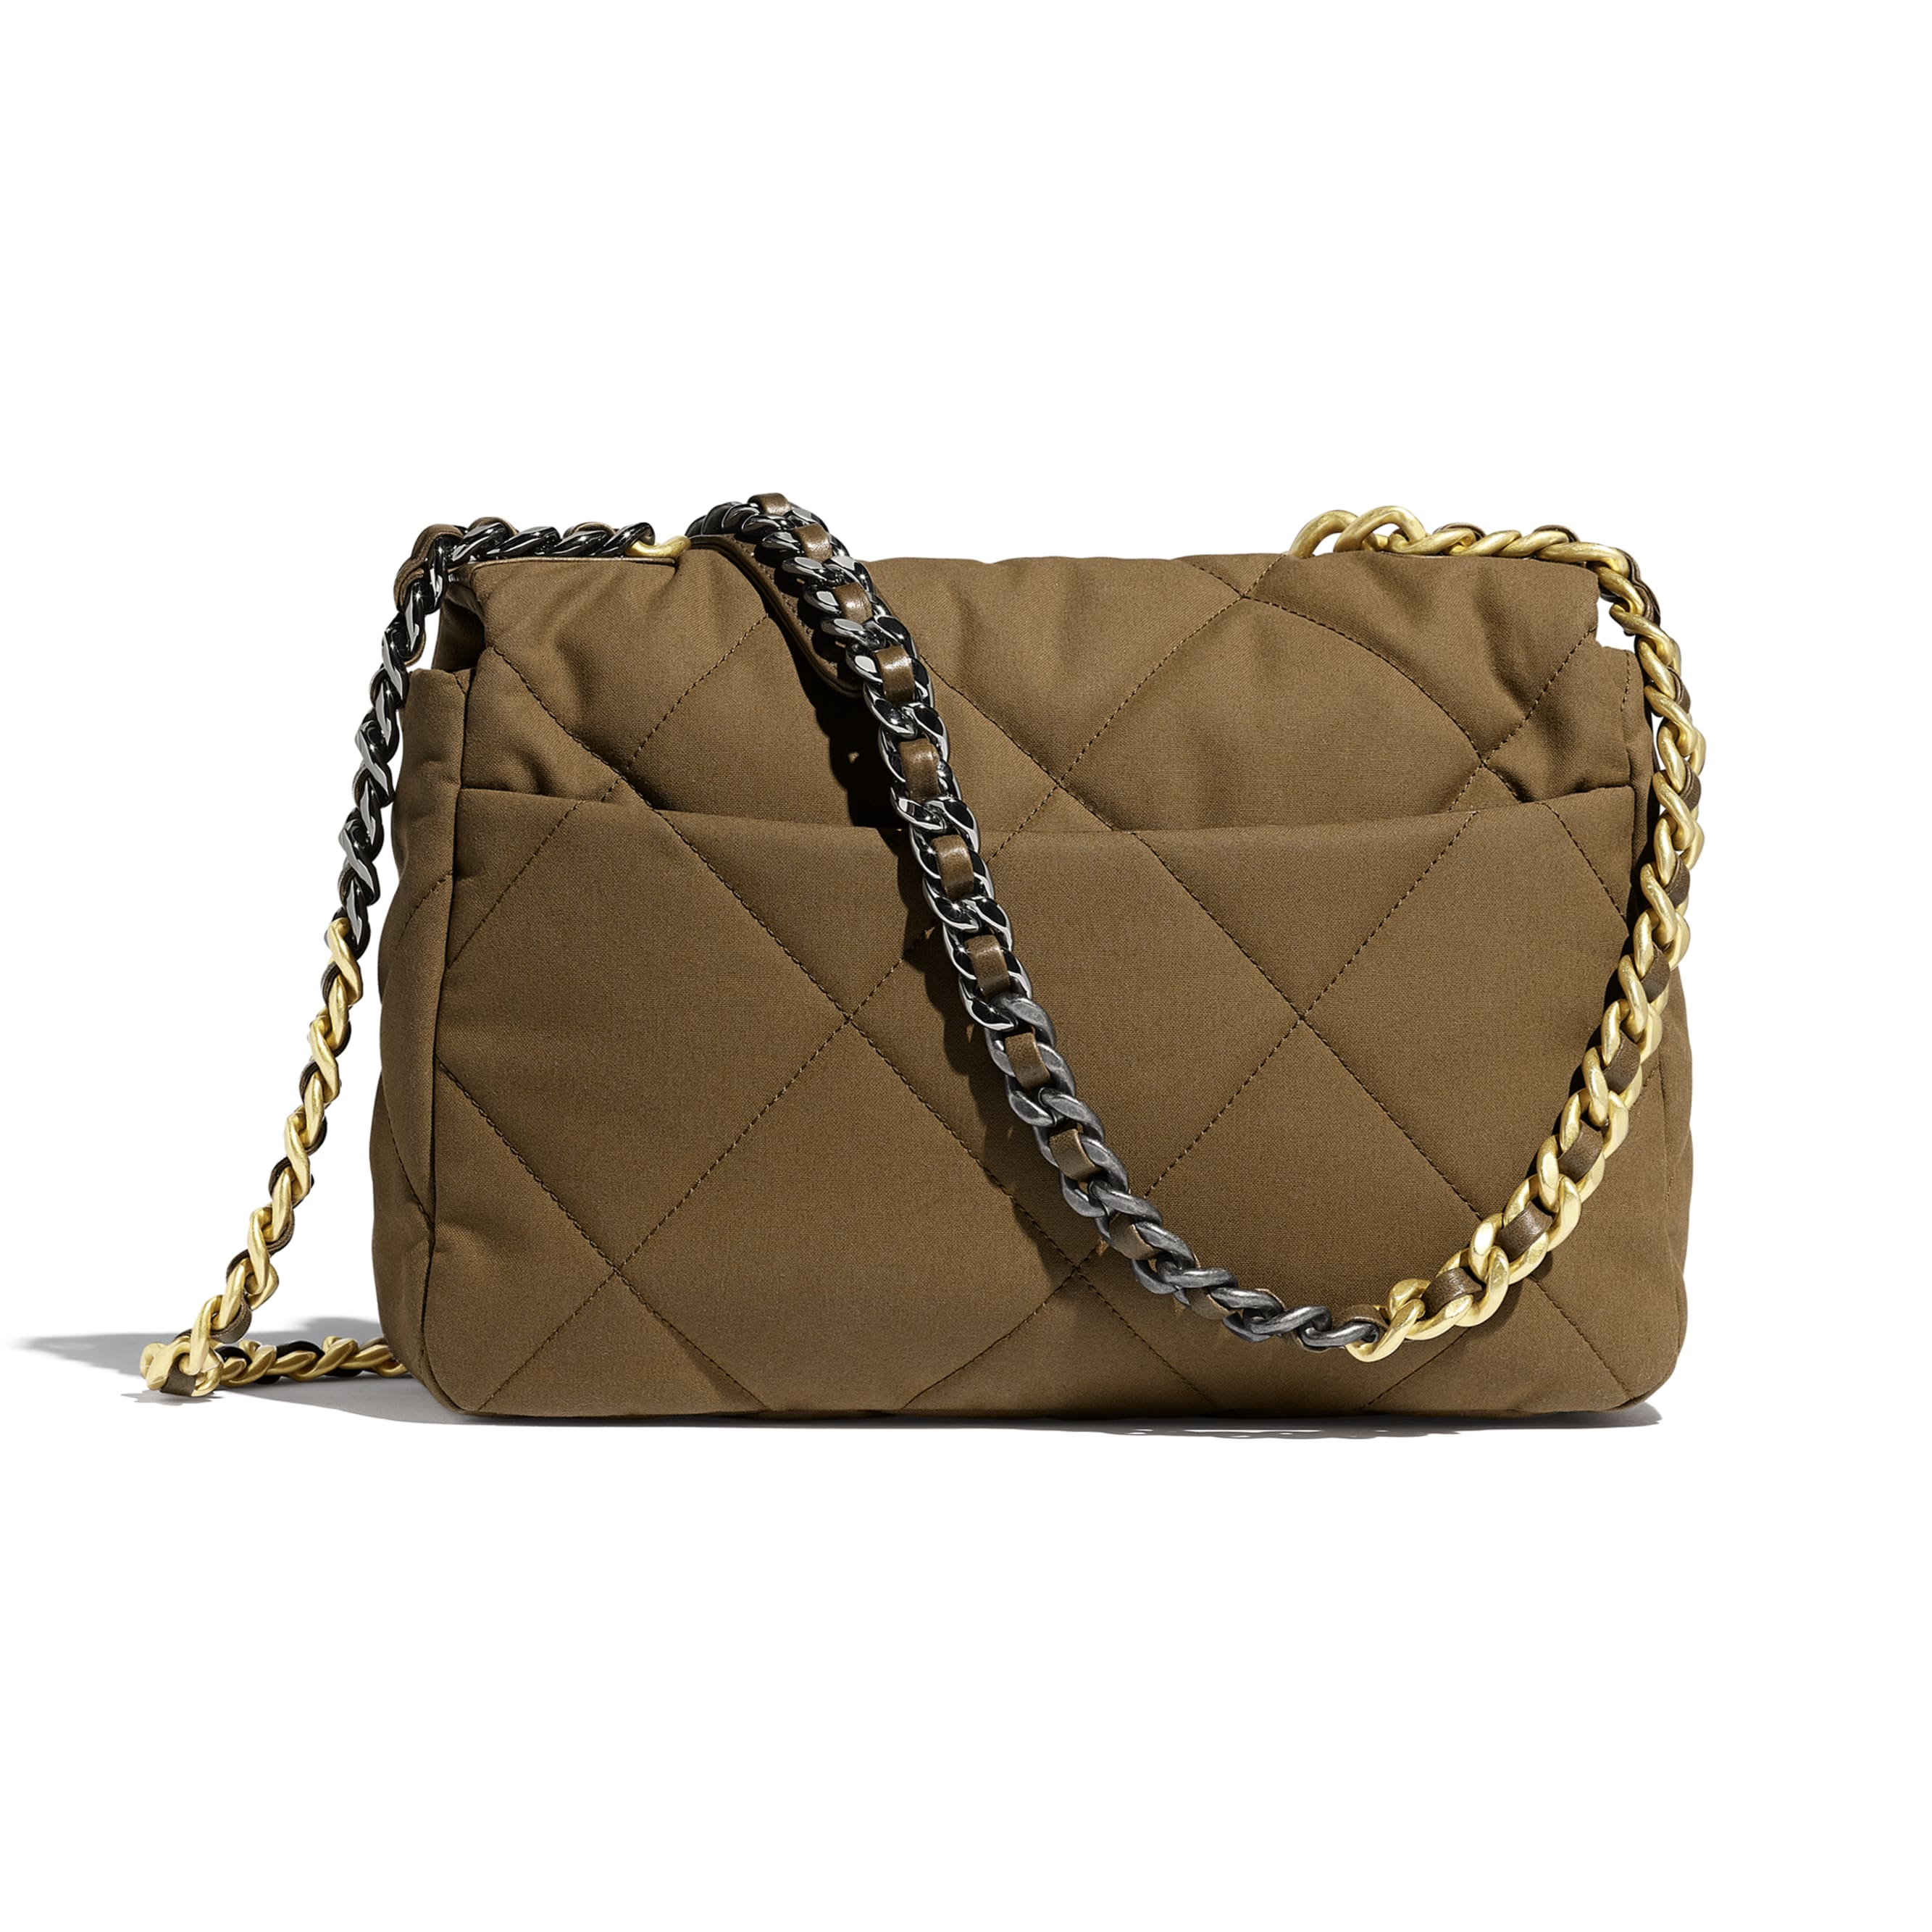 CHANEL 19 Large Flap Bag - Bronze - Cotton Canvas, Calfskin, Gold-Tone, Silver-Tone & Ruthenium-Finish Metal - CHANEL - Alternative view - see standard sized version